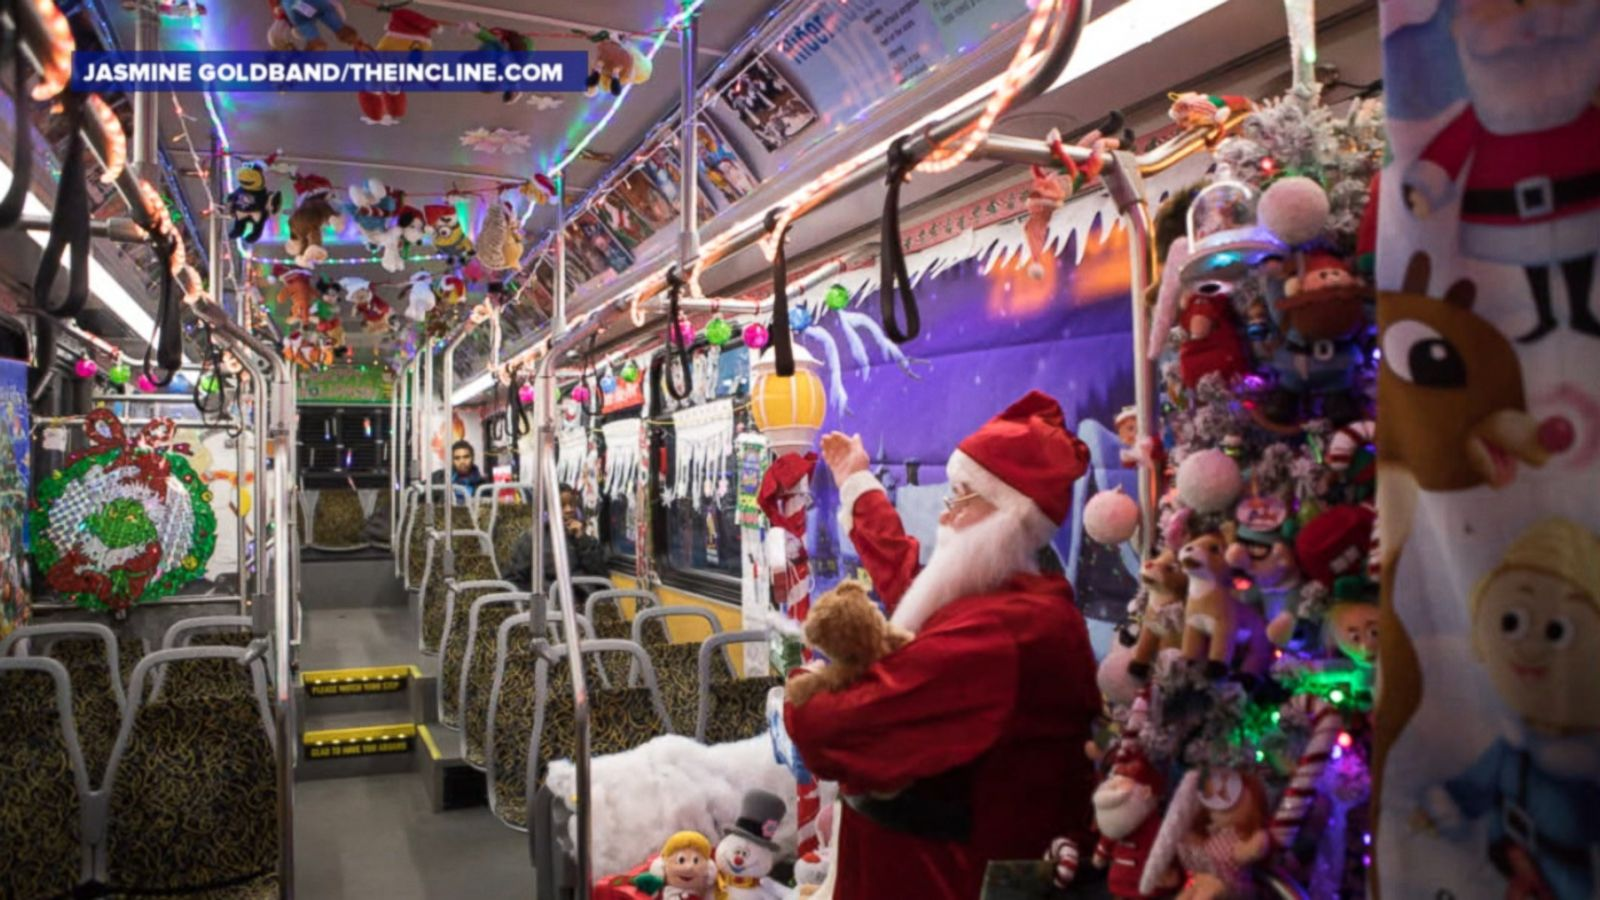 Driver Bill Sanfilippo elaborately decorates his city bus to spread holiday cheer along his route in Pittsburgh.